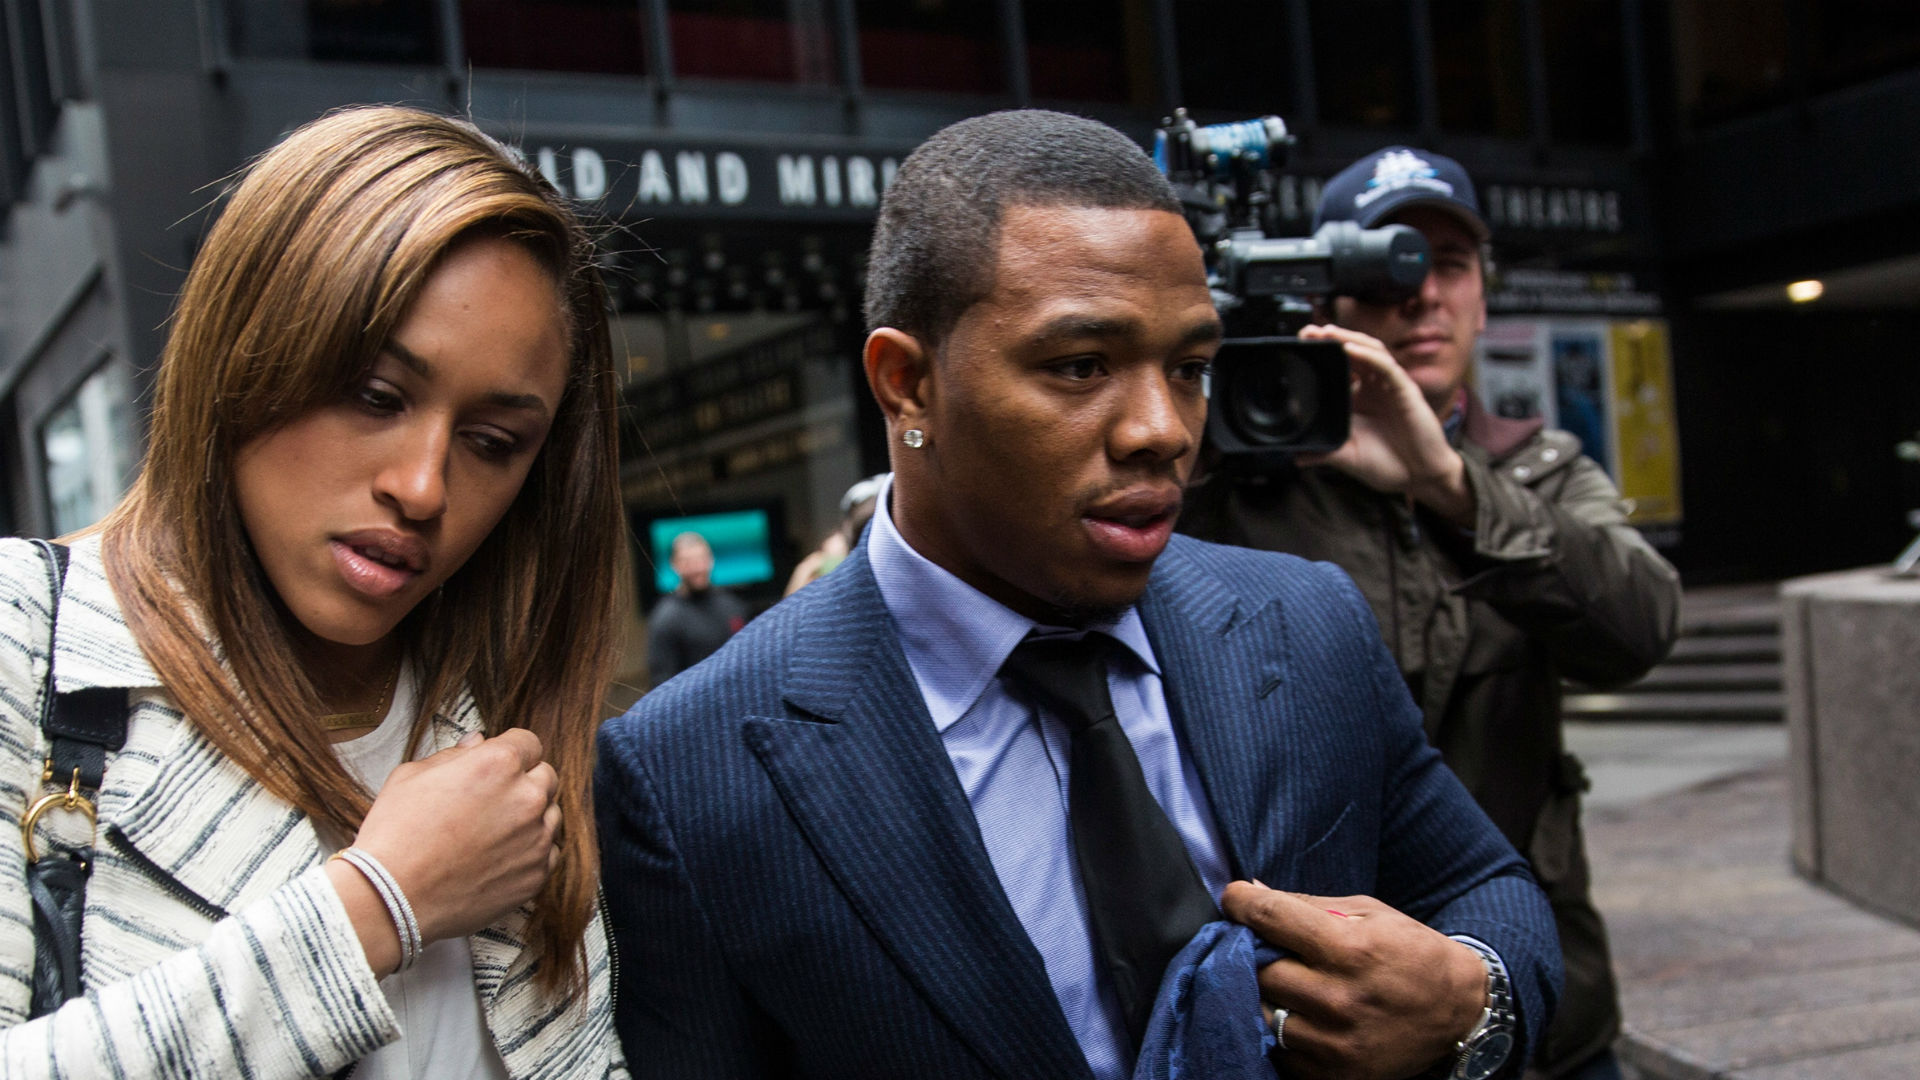 Rehabilitated Ray Rice hopes to 'hang it up the right way'